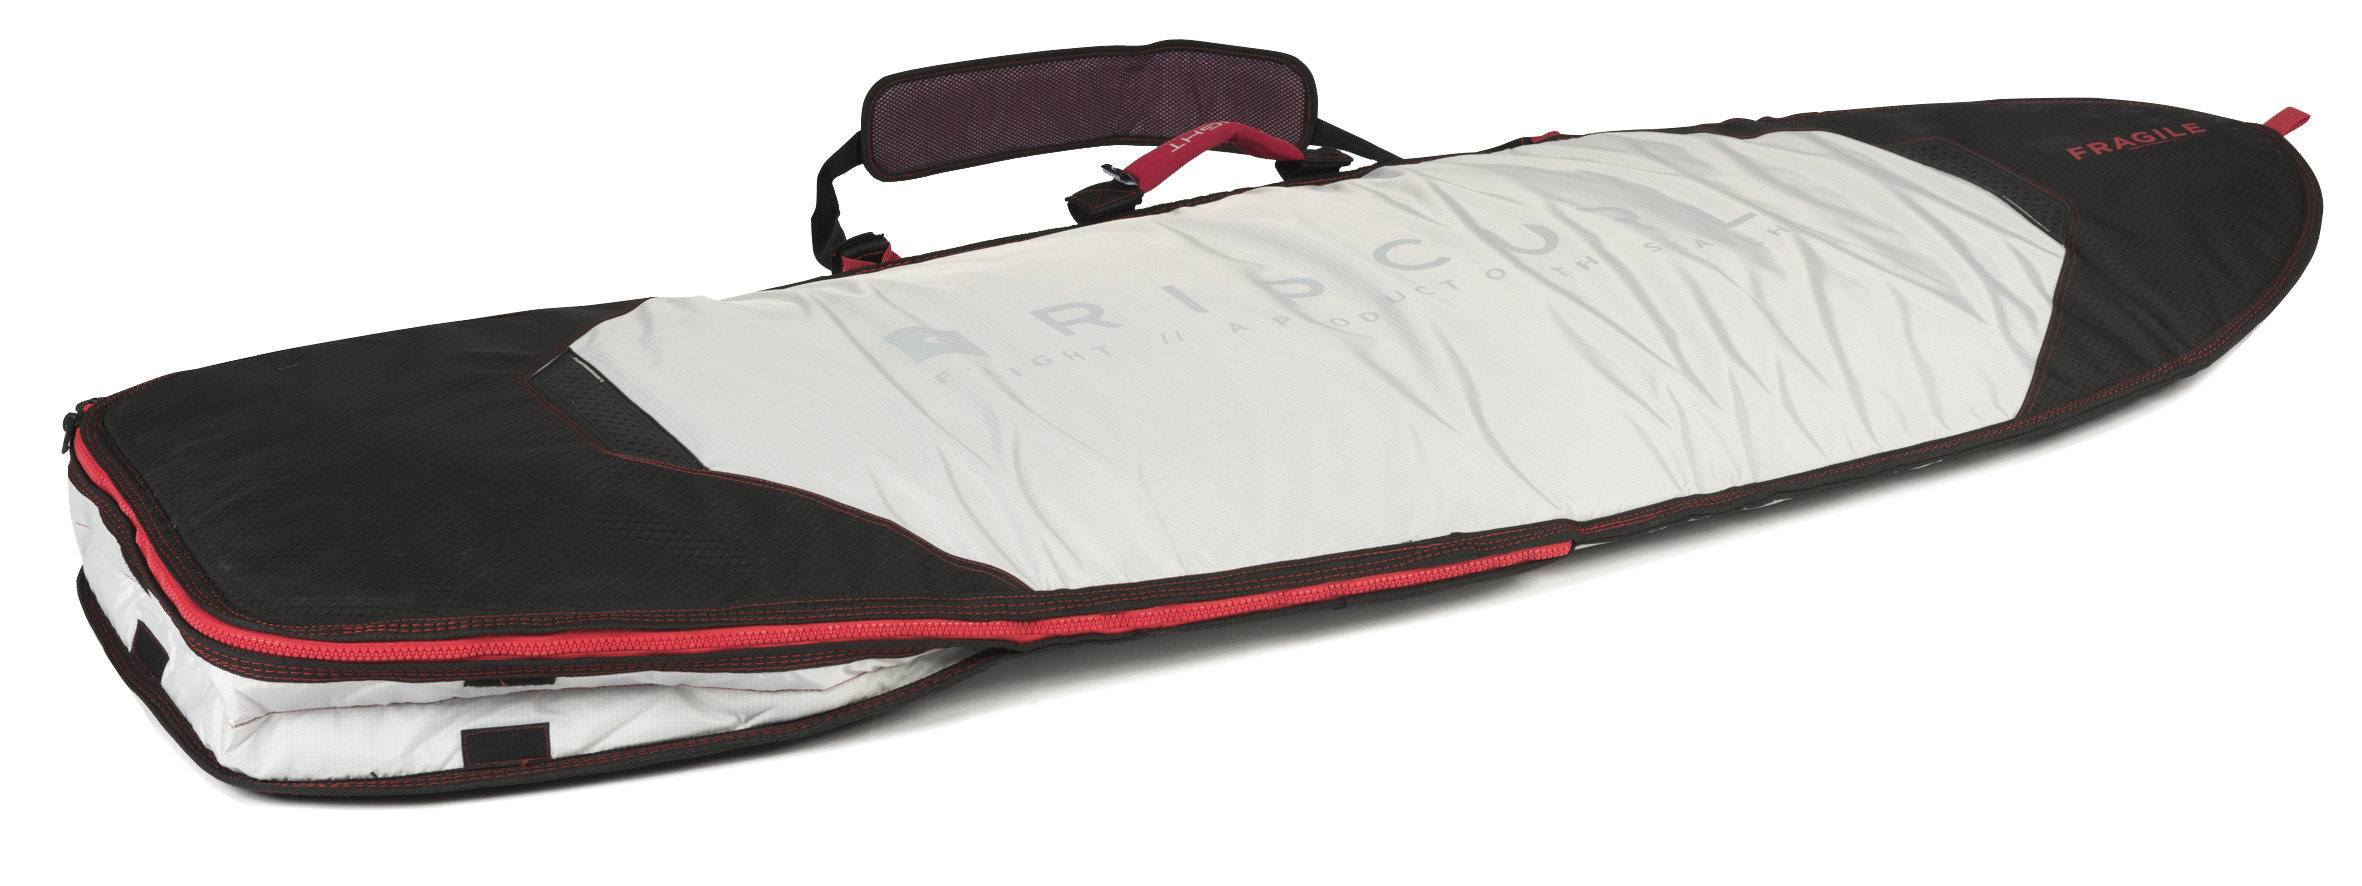 FUNDA RIP CURL F-LIGHT FISH COVER 6'5